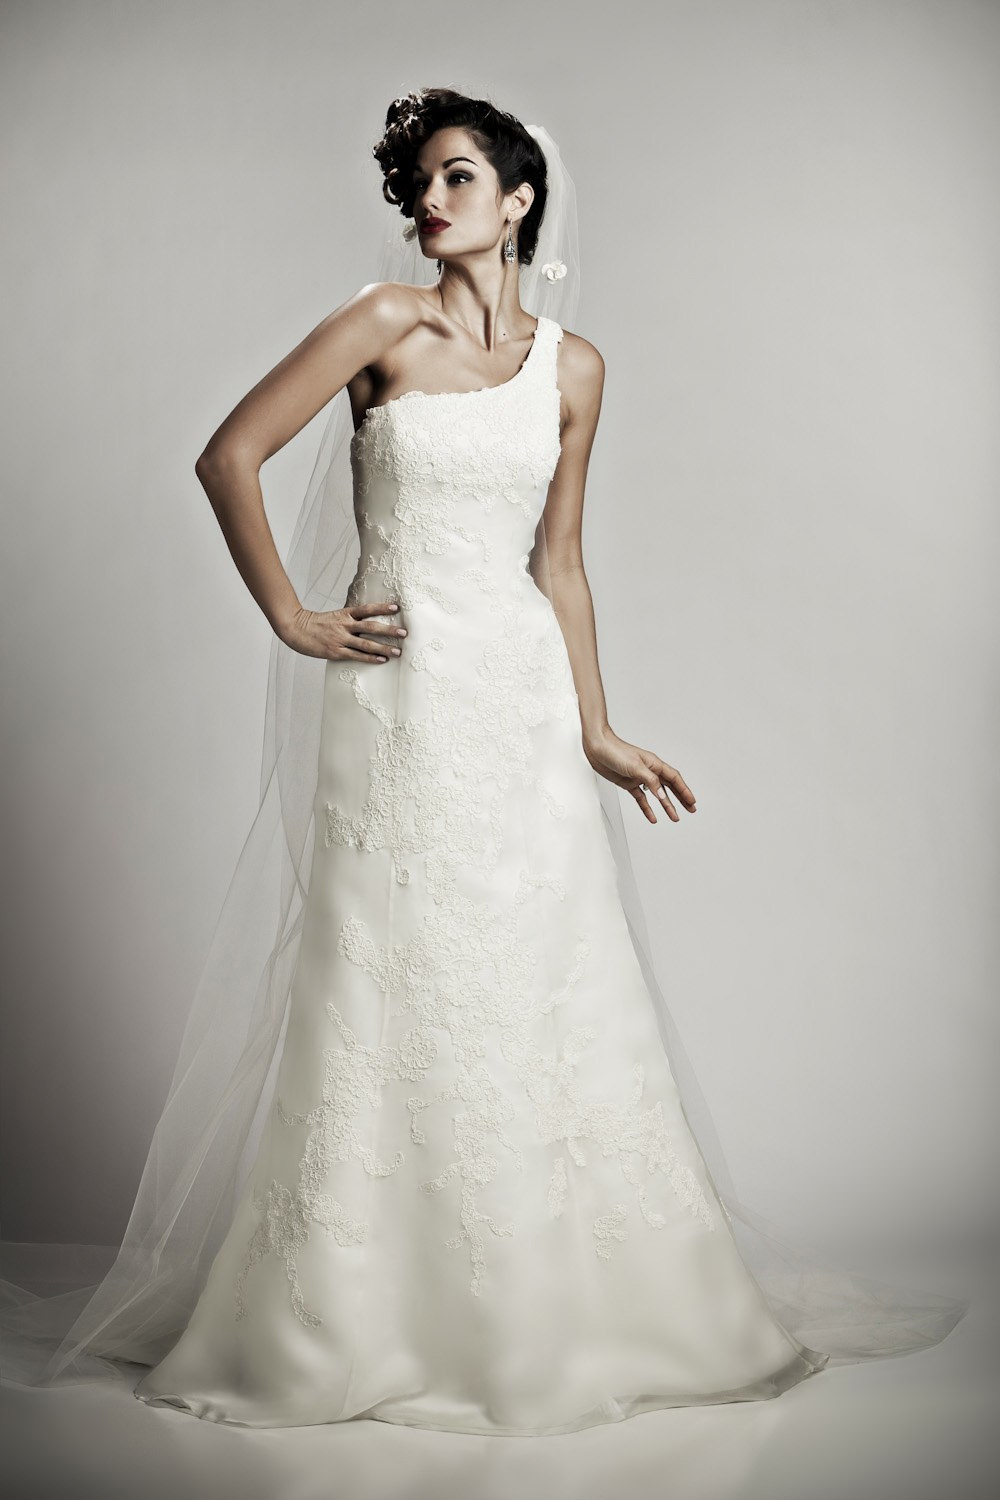 One-shoulder-wedding-dress-fit-and-flare-bridal-gown-lace-embellished.full